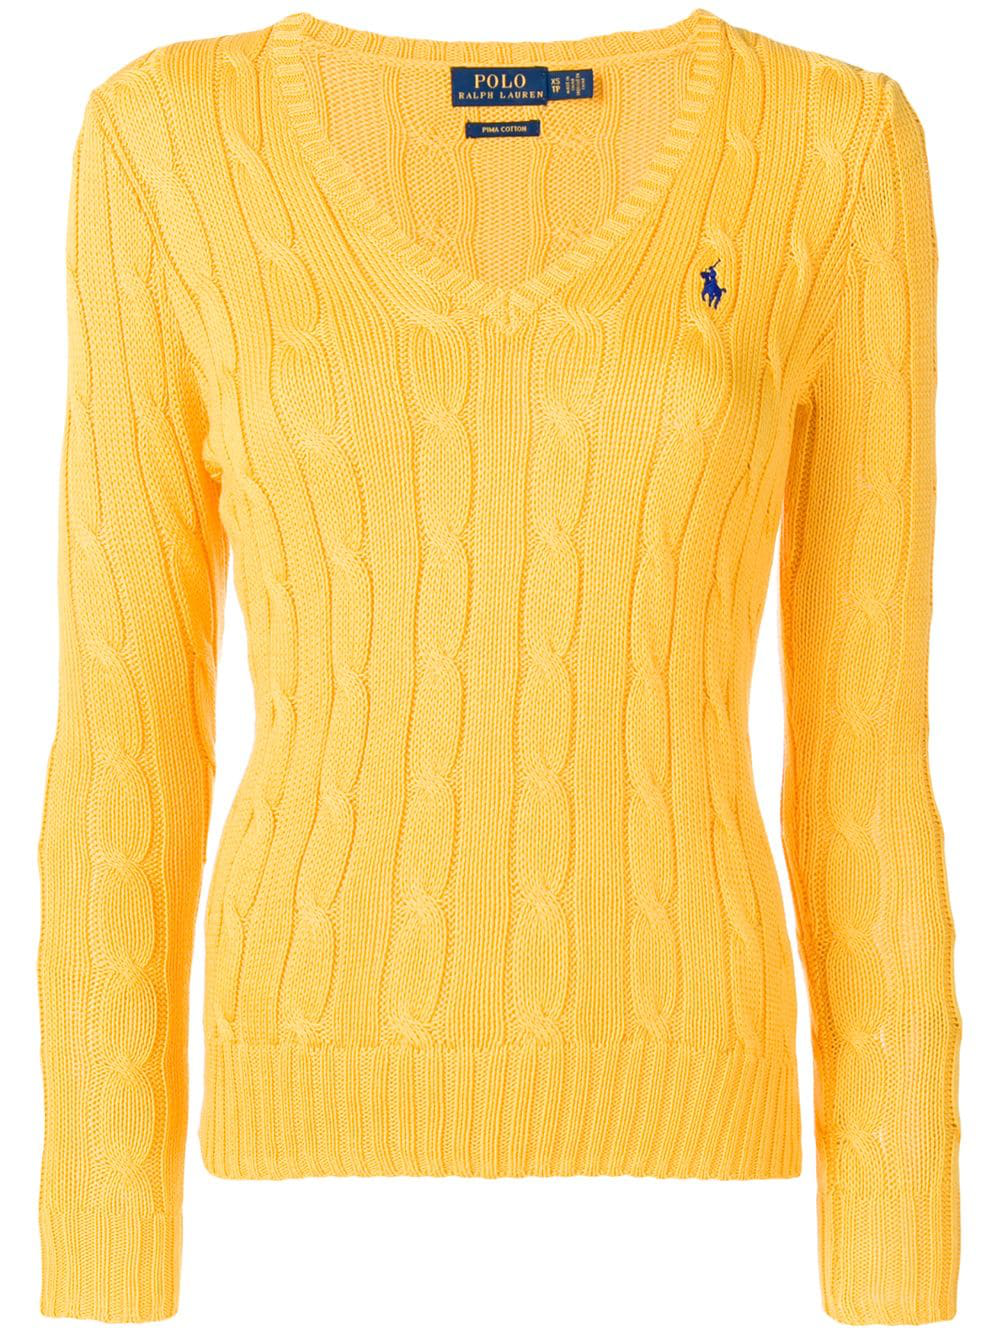 474ec43ff2ab75 Polo Ralph Lauren Cable Knit Jumper - Yellow | ModeSens